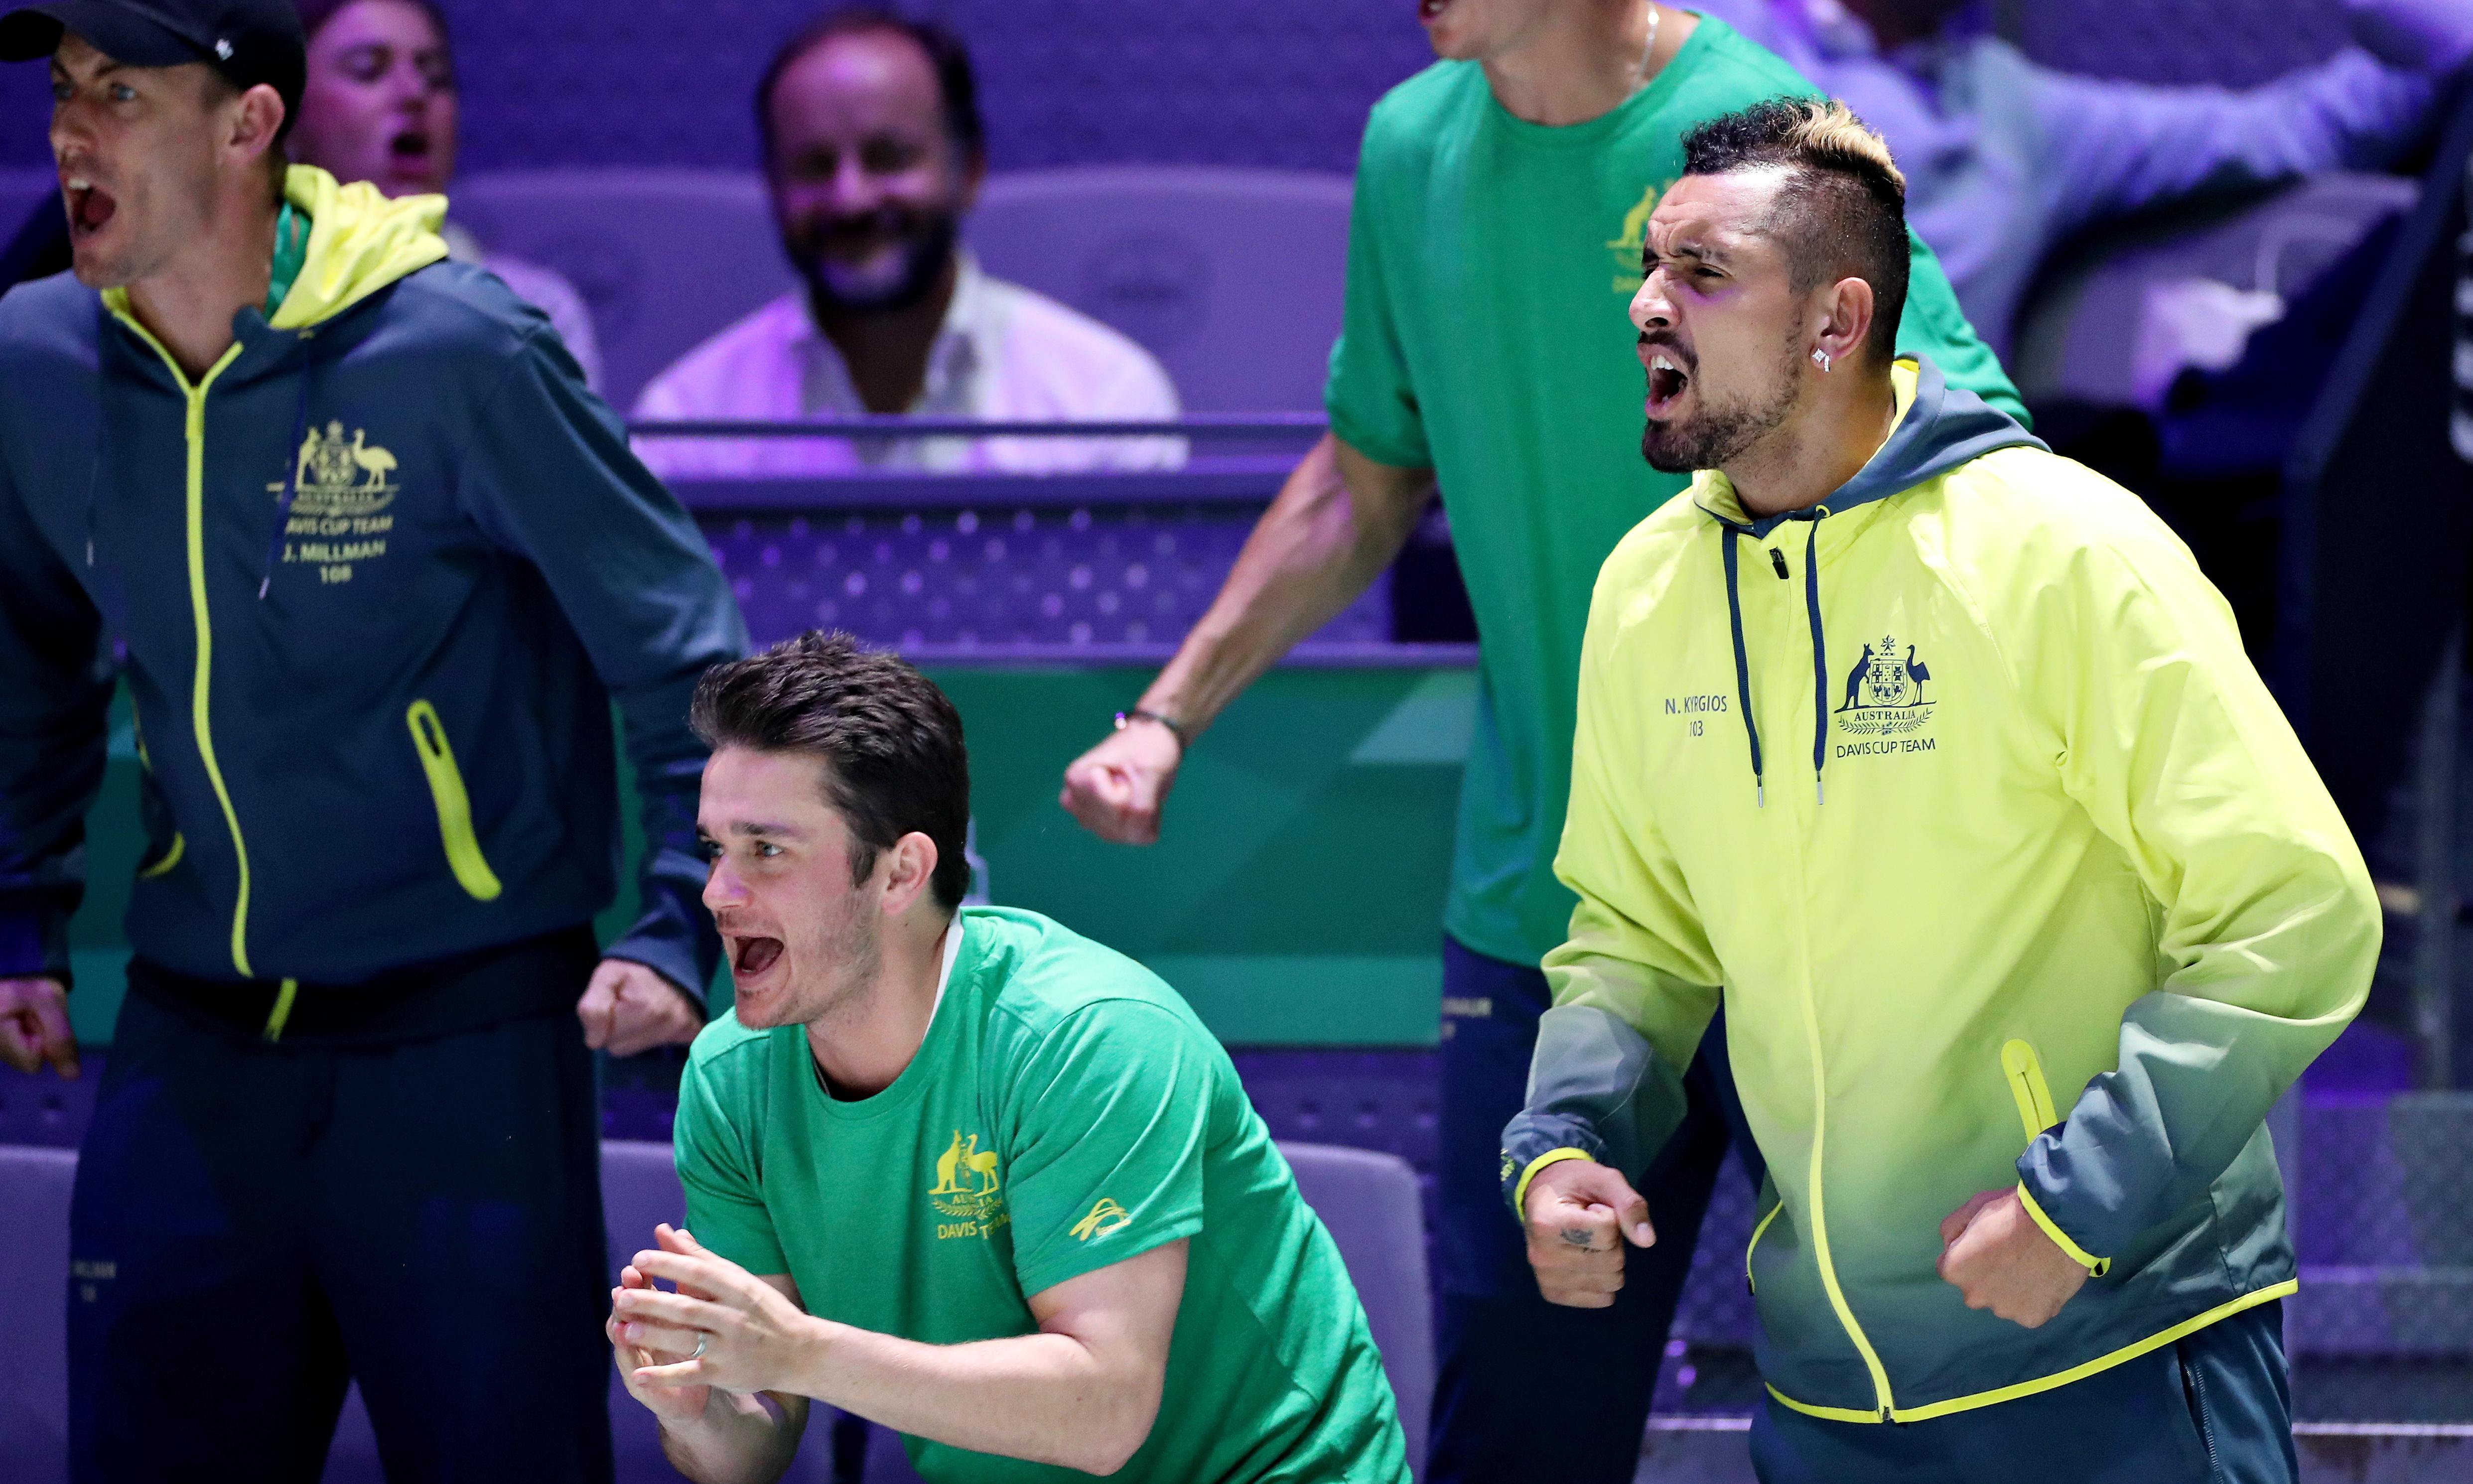 Australia fall in Davis Cup quarter-final after Nick Kyrgios pulls out with injury